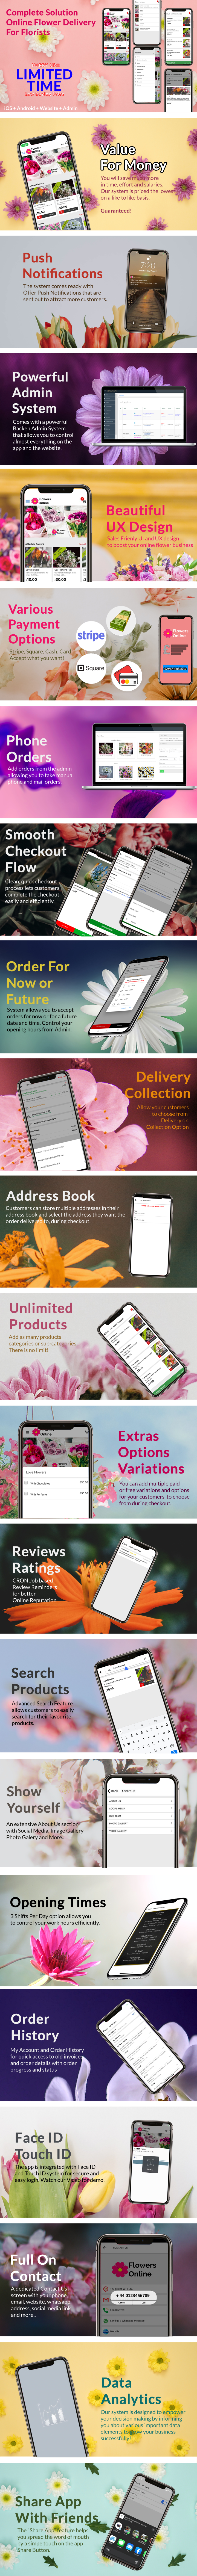 Flowers Florists Floristry Online Bouquet Ordering System (iOs + Android + Onwer App + Web + Admin) - 8